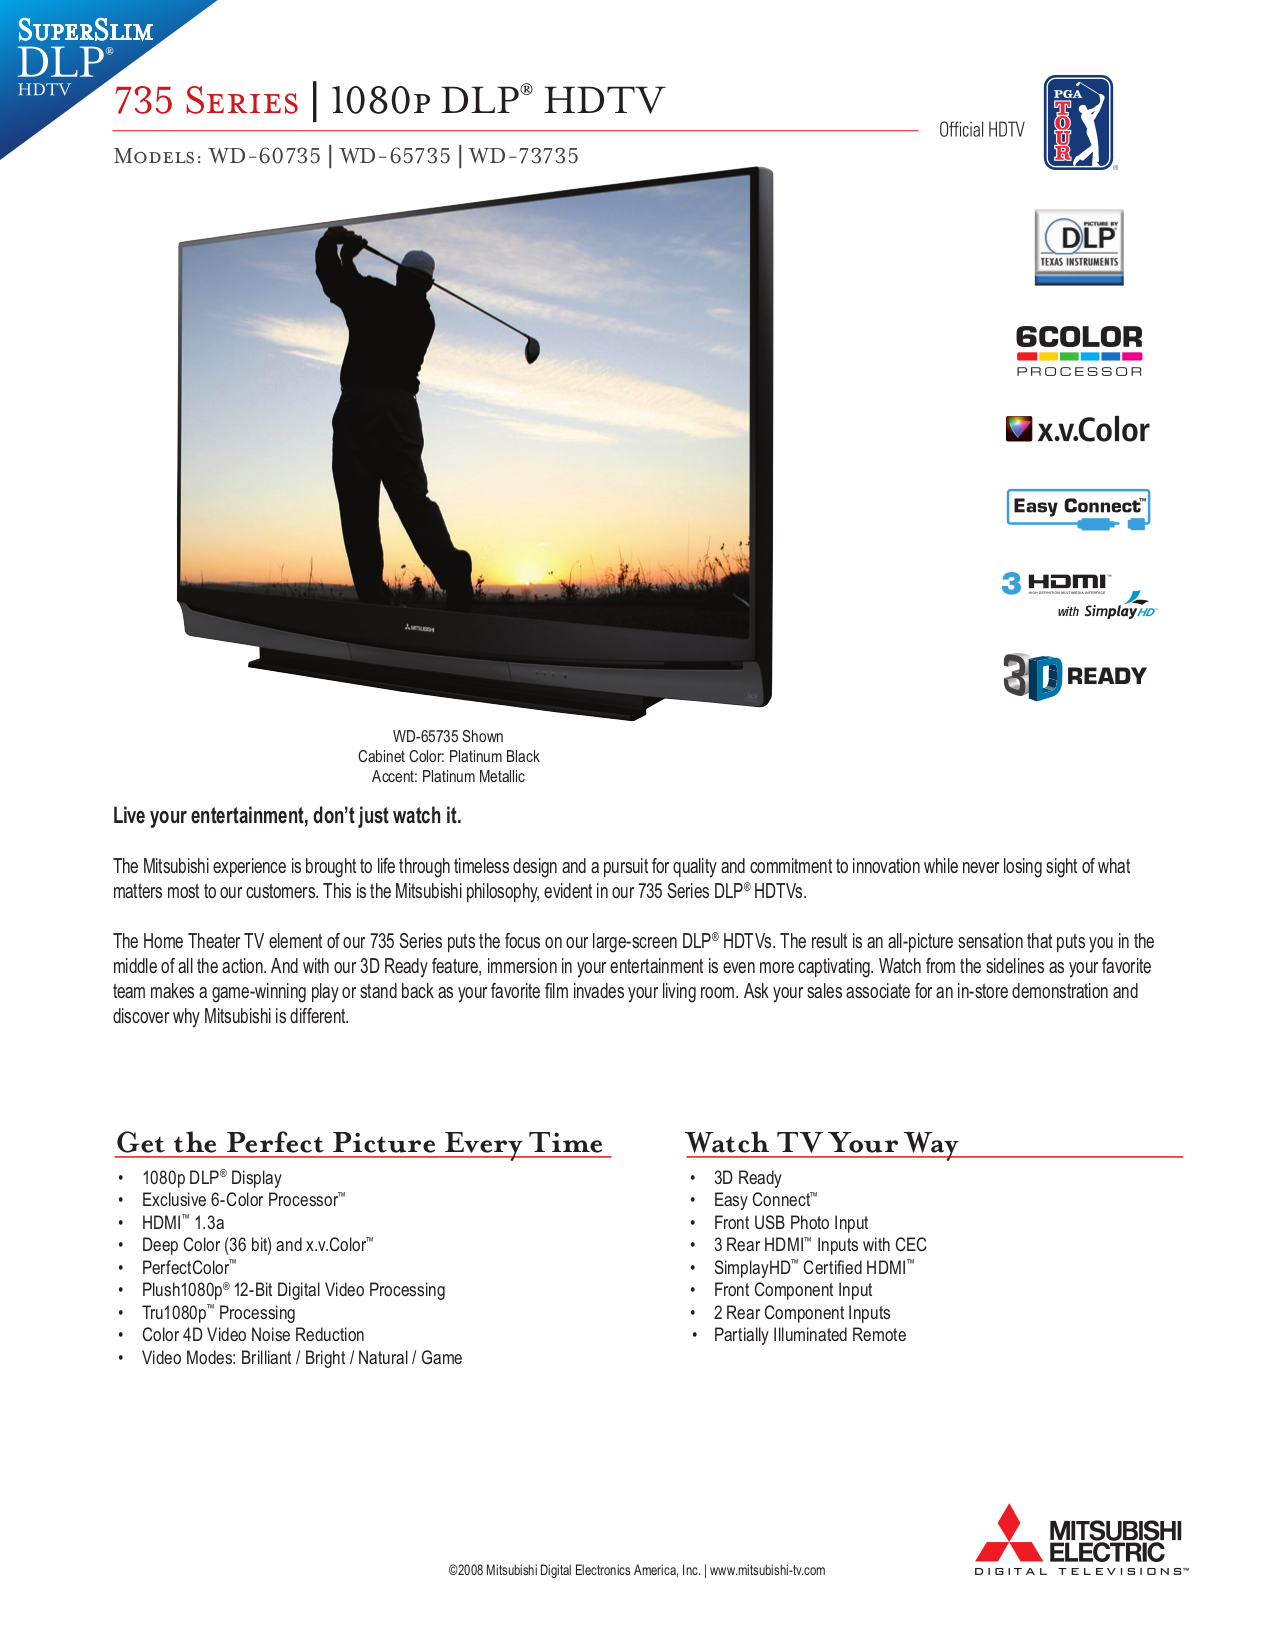 Download free pdf for Mitsubishi WD-73735 TV manual